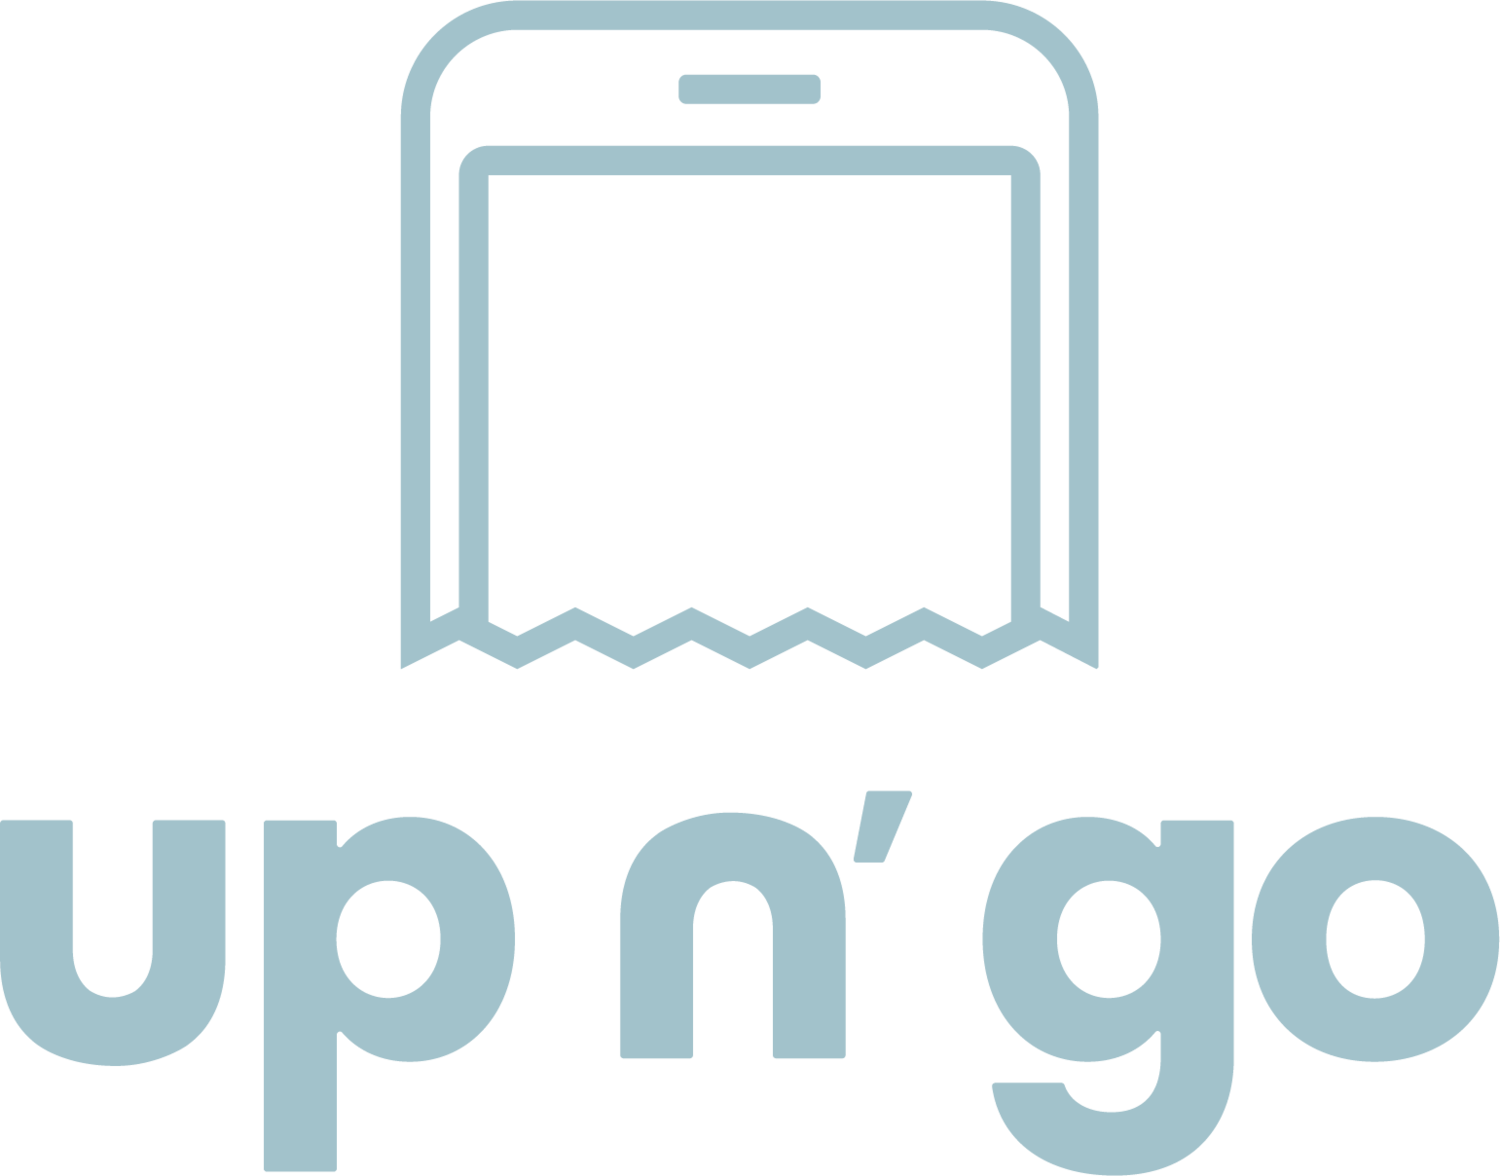 Up n' go - Mobile Payments for Restaurants